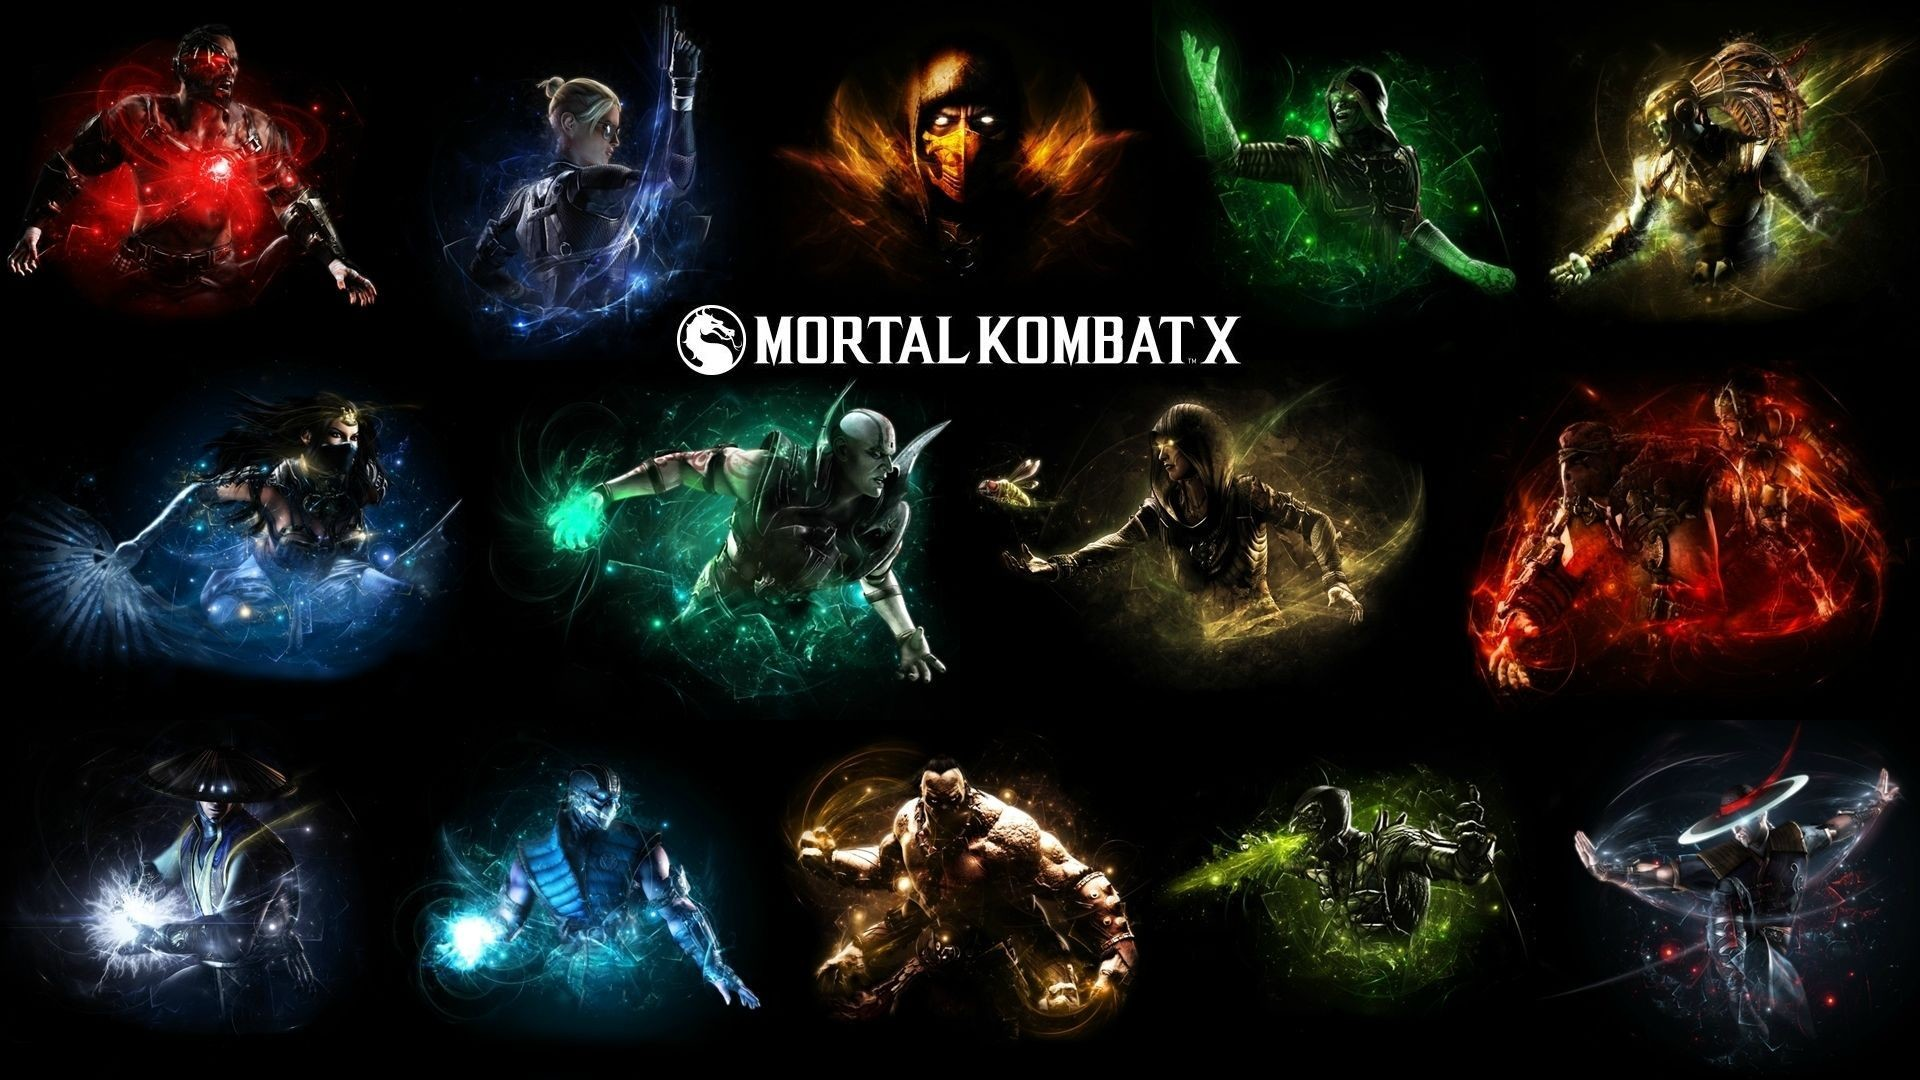 Wallpapers Mortal Combat Posted By Ryan Mercado